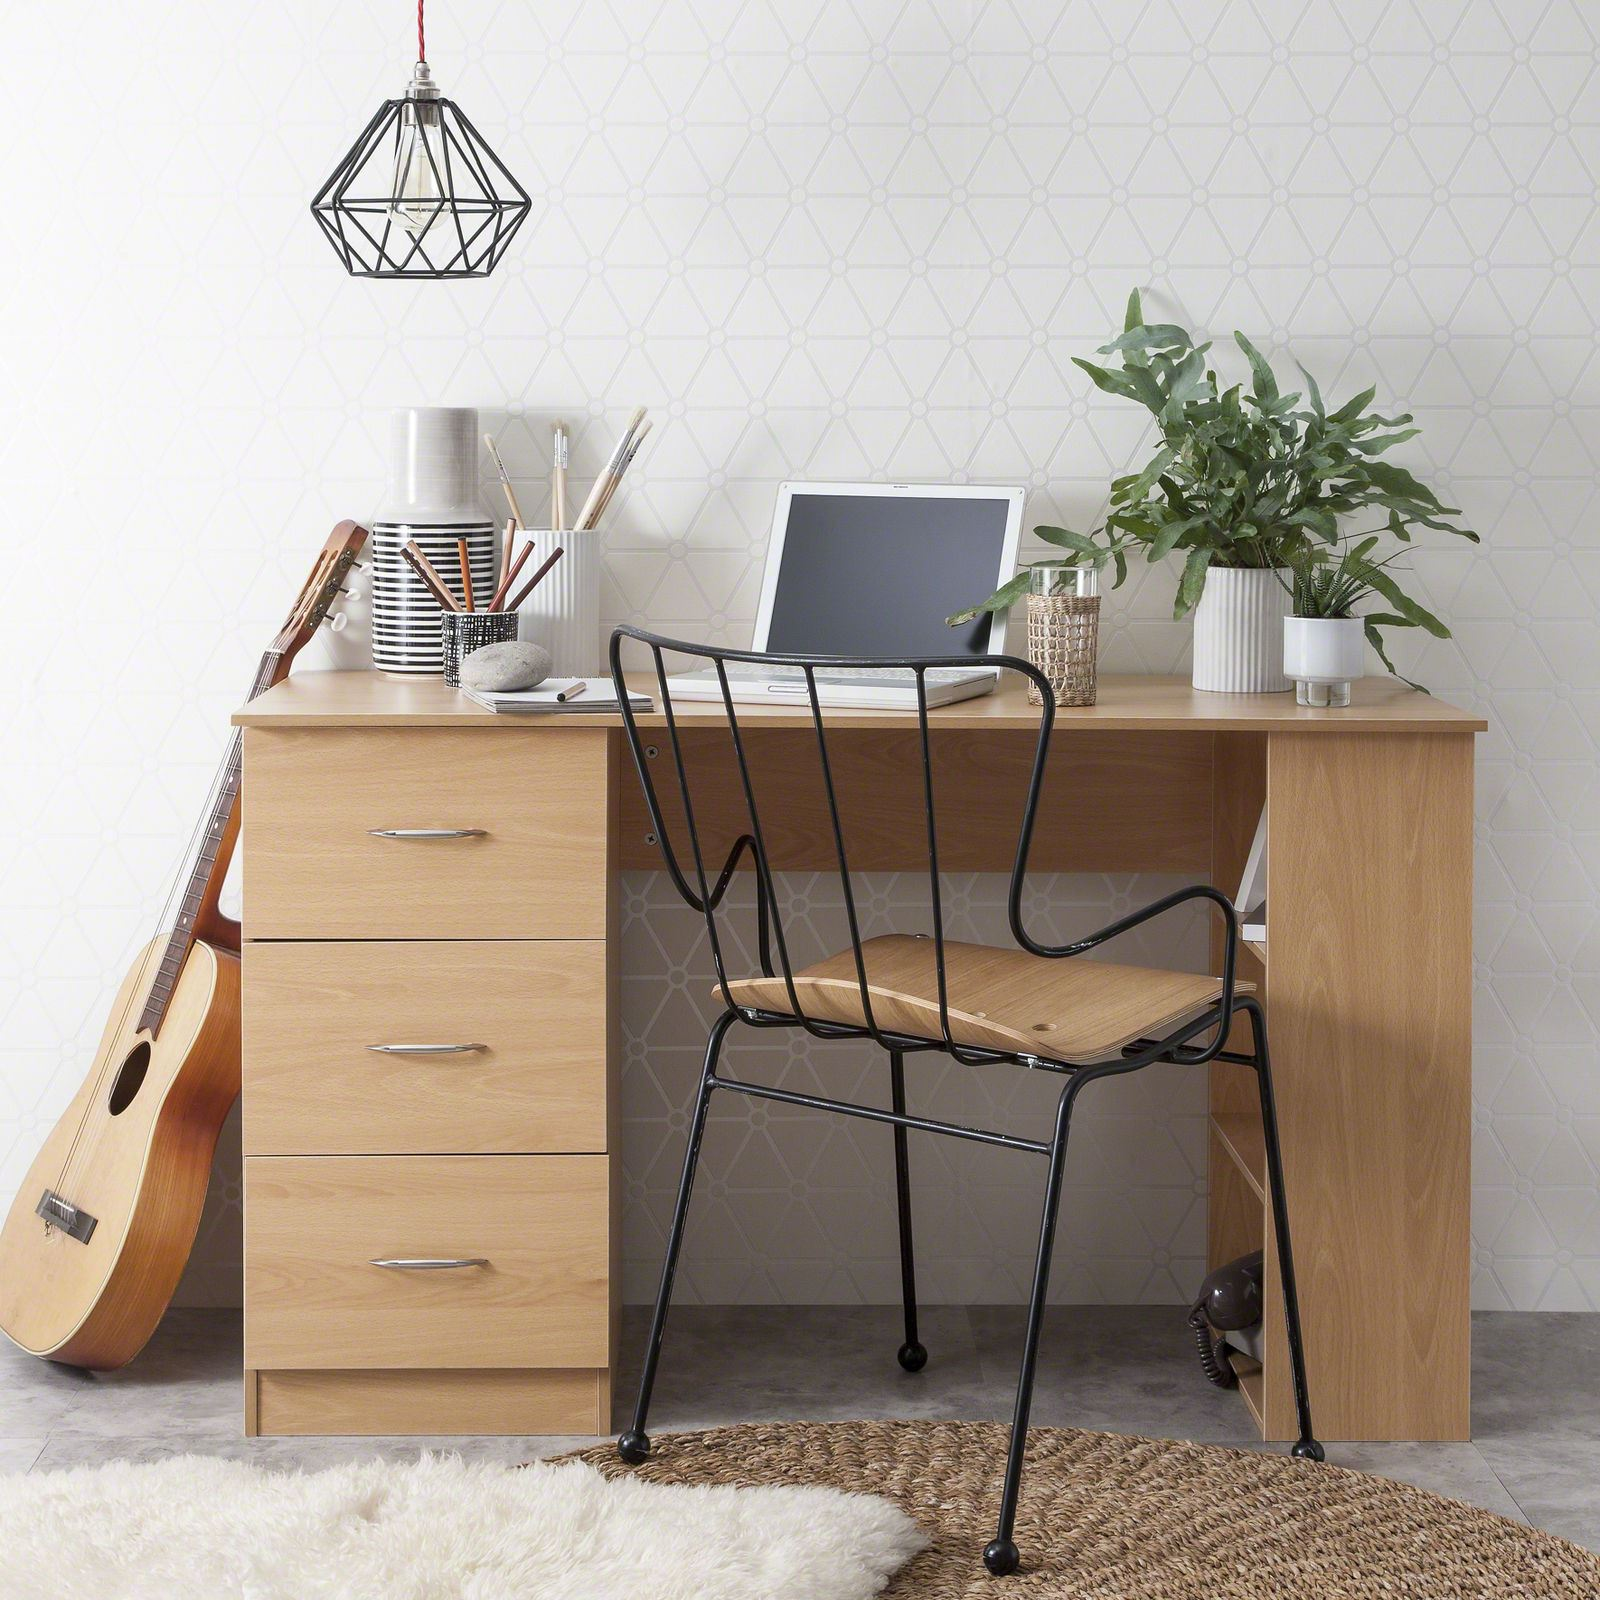 b photo o h computer c wood table product desk reg with bell curved sides